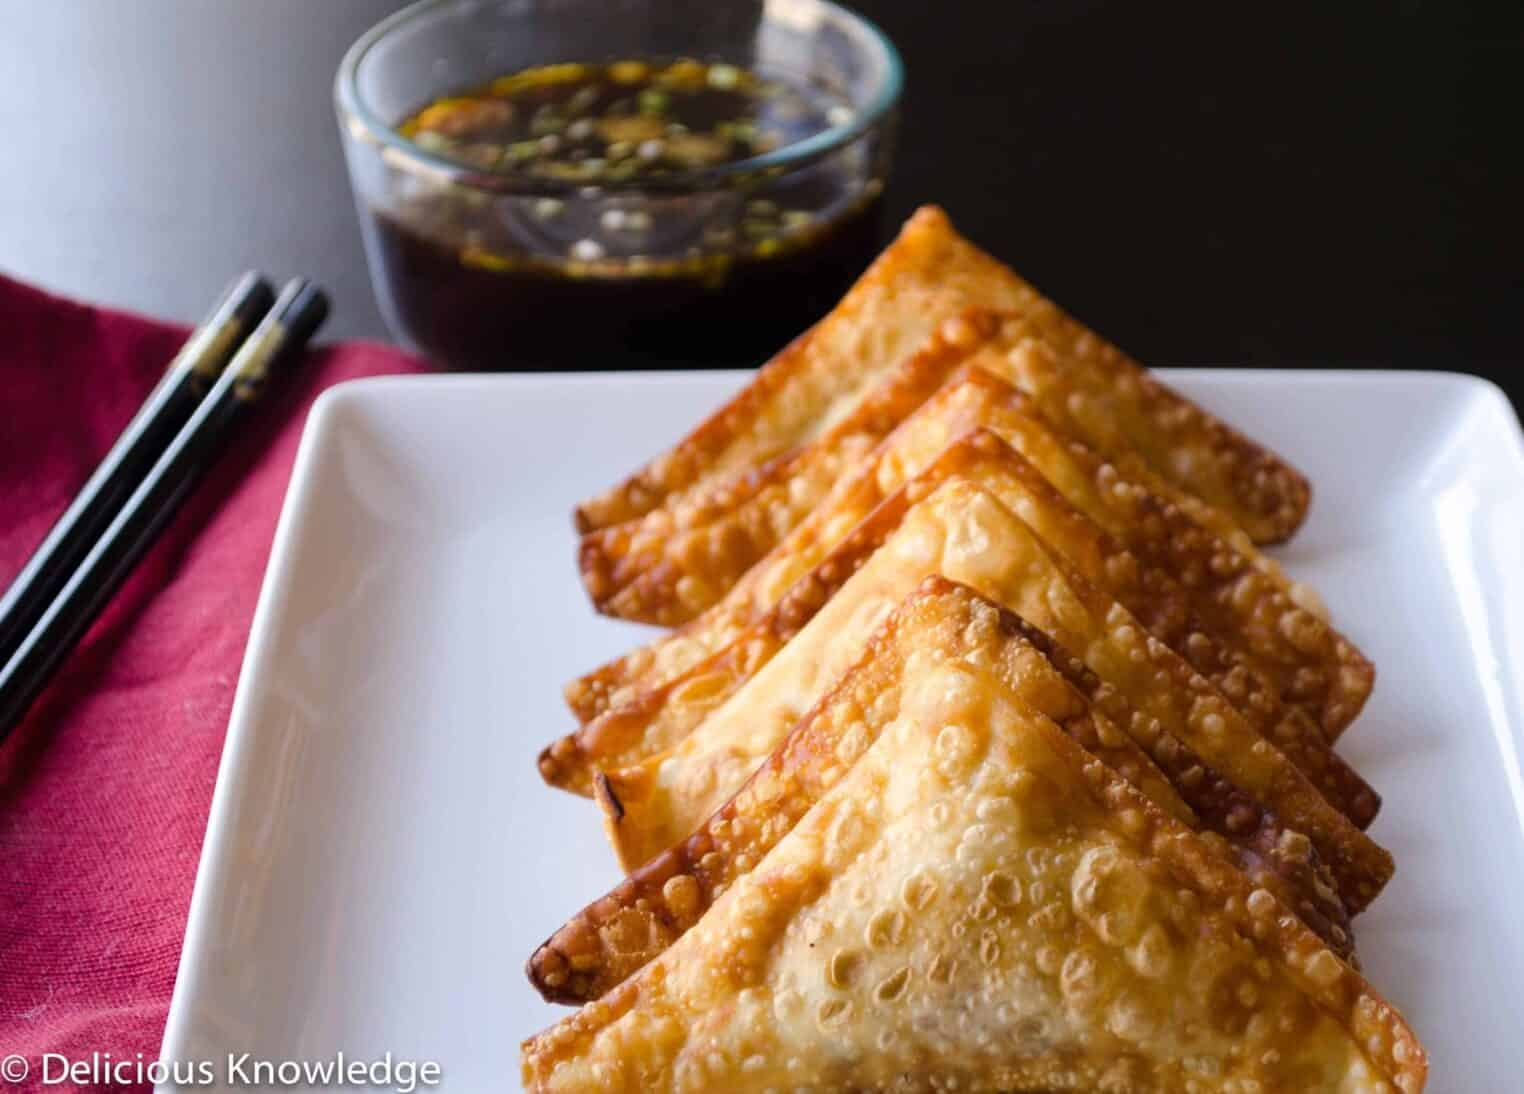 Avocado Wontons! Like crab napoleons, but vegan and healthy! Wonton skins stuffed with avocado, corn and veggies. Lightly fried and served with a dipping sauce.